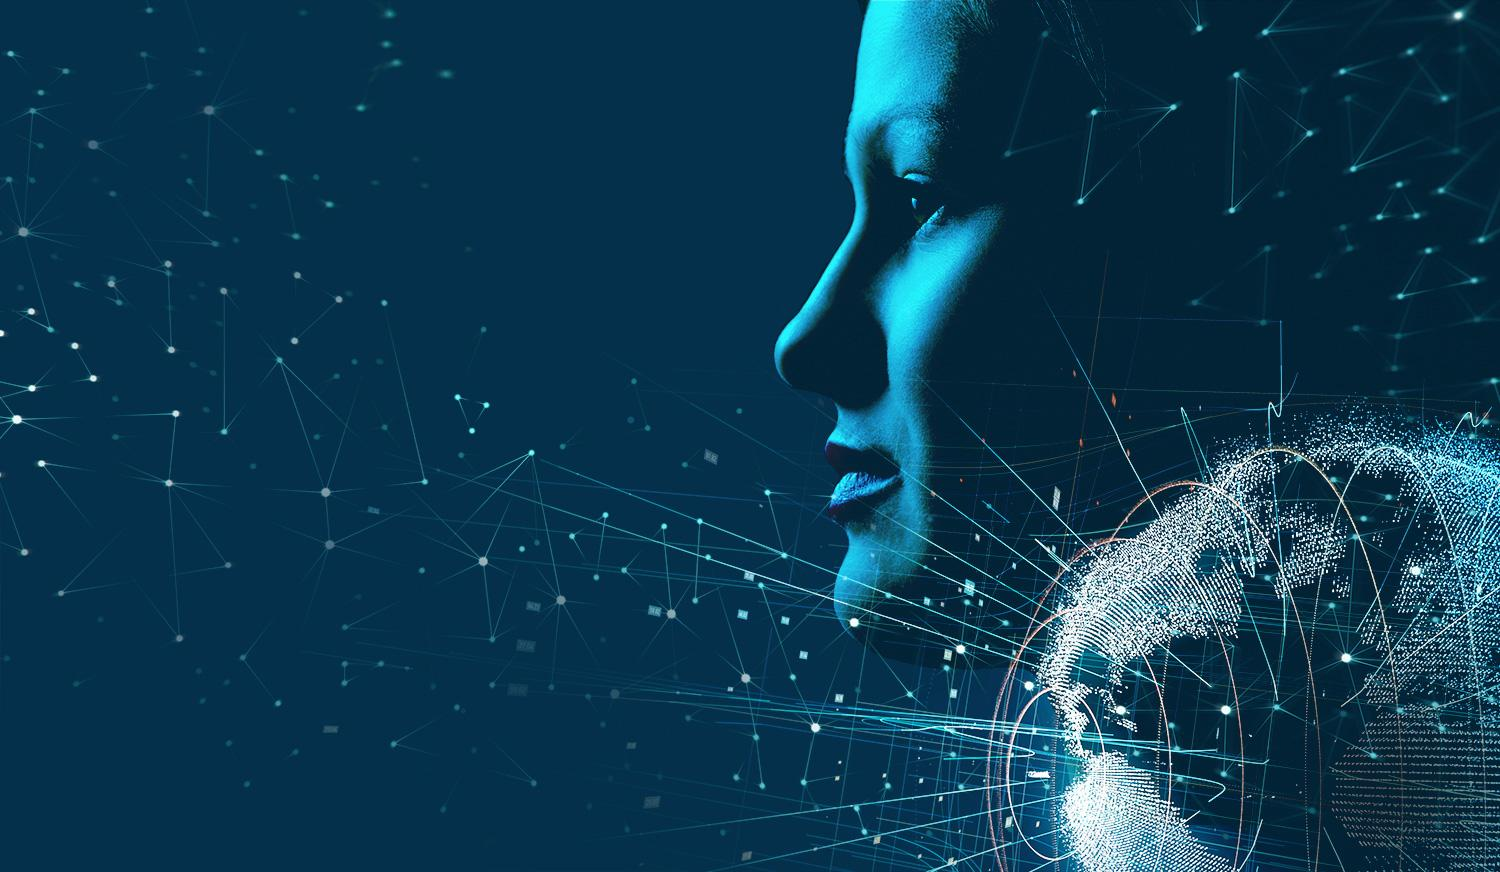 Midnight background with woman's profile and stylized globe